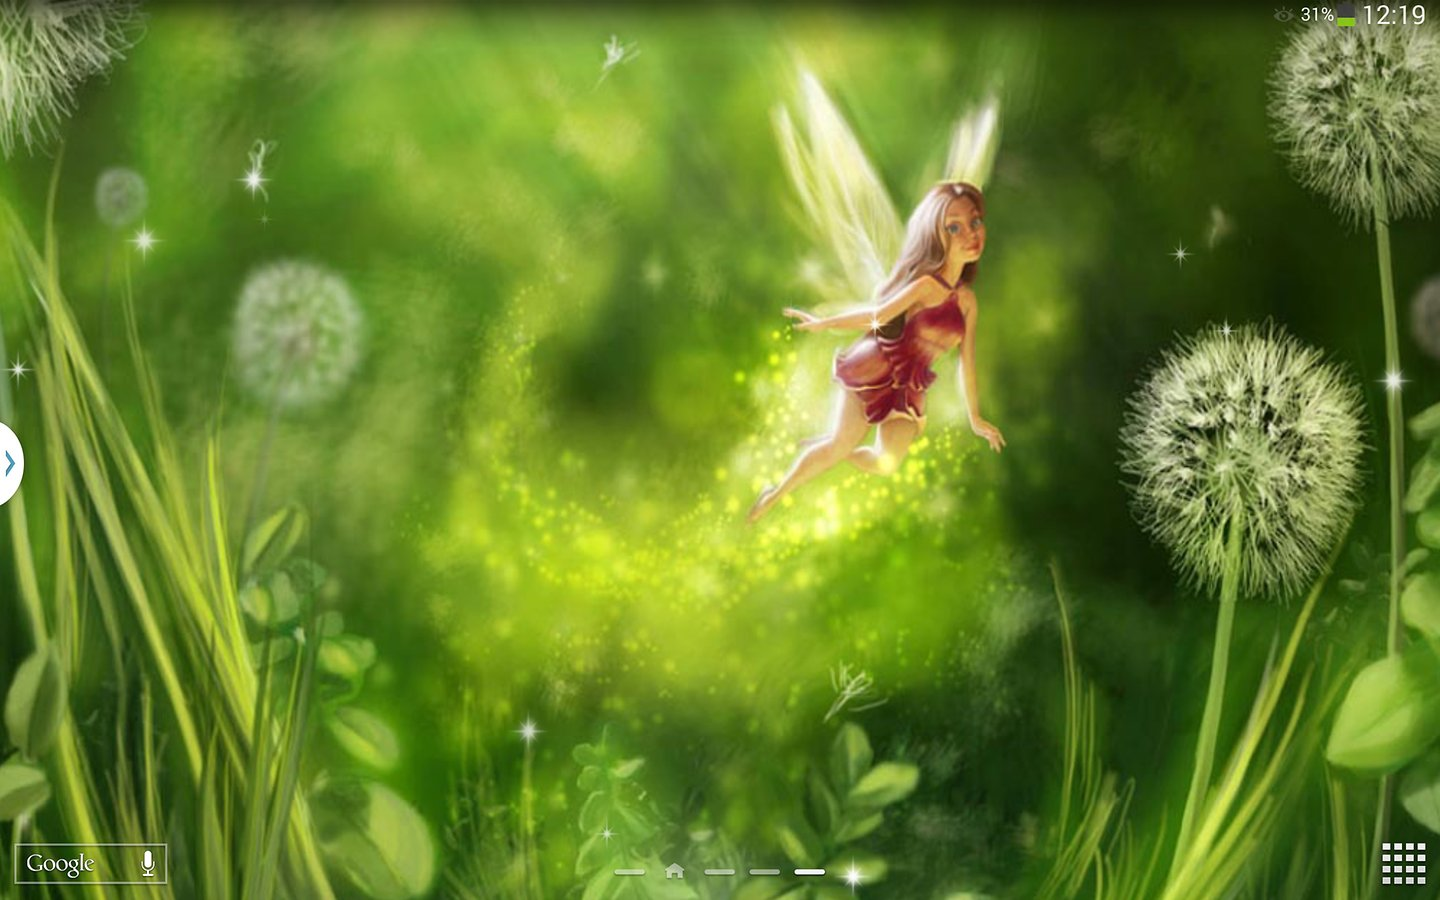 Fairy live wallpaper wallpapersafari - Fairy wallpaper for android ...